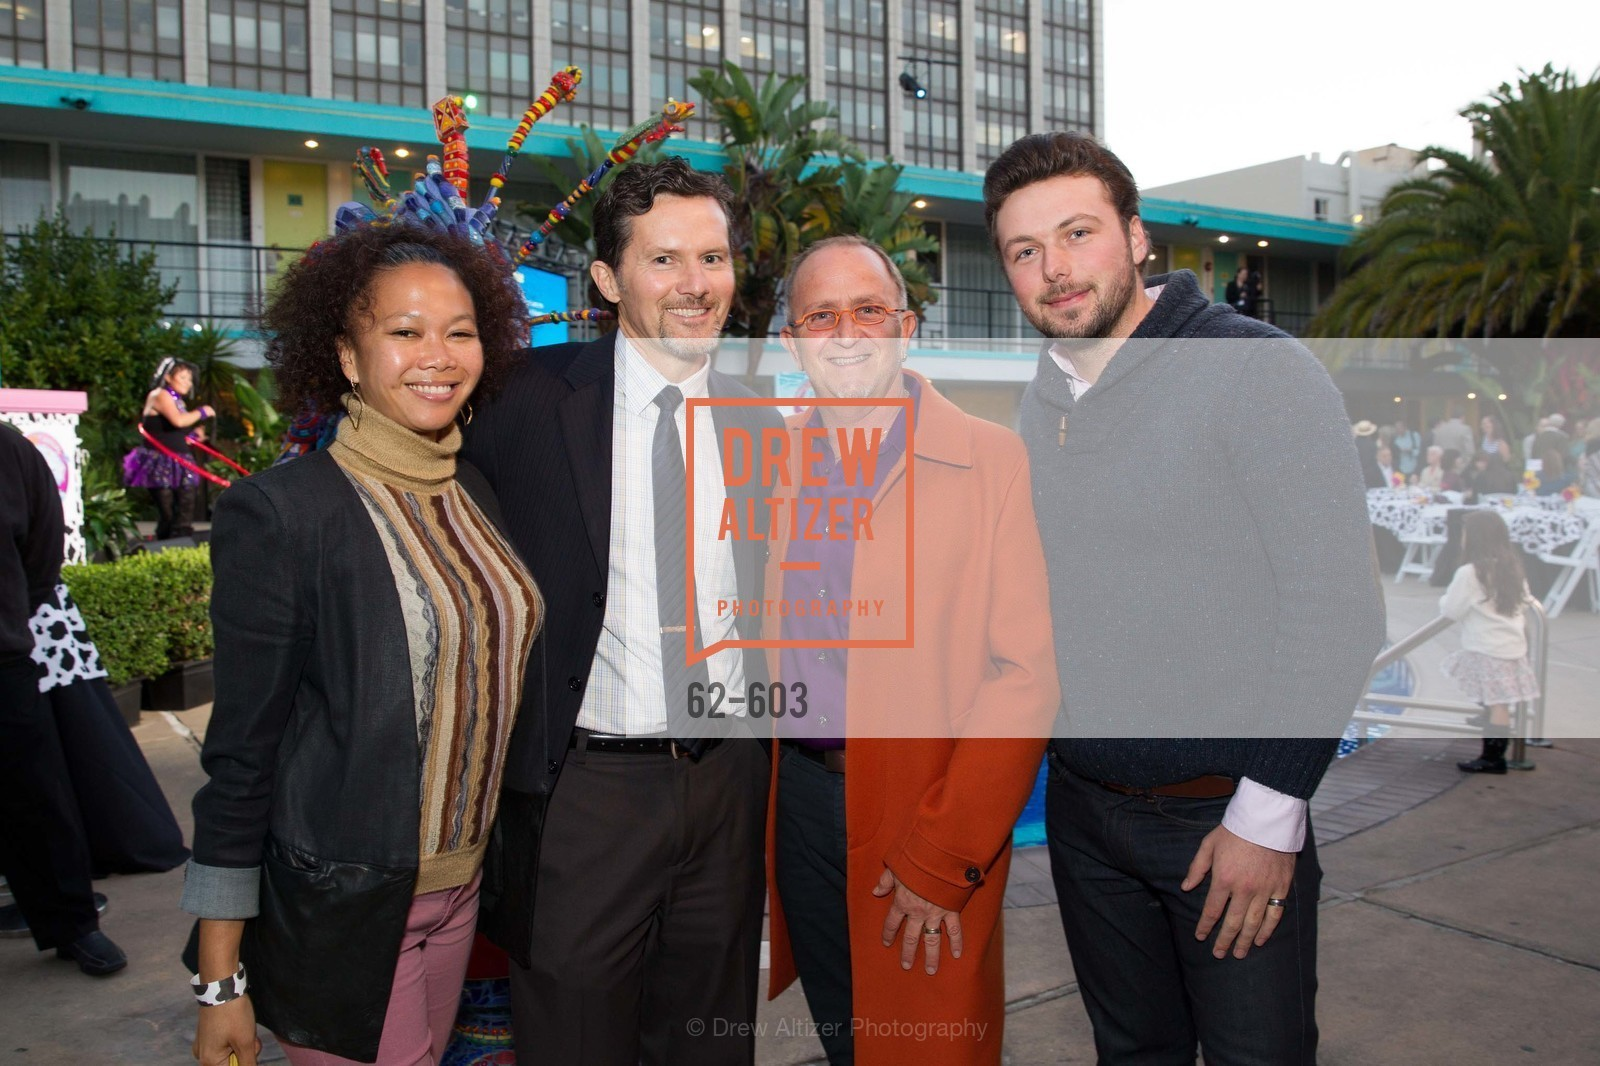 Dori Caminong, Curtis Maughlin, Charles Zukow, James Smith, 22nd Annual TNDC CELEBRITY POOL TOSS, US, October 9th, 2014,Drew Altizer, Drew Altizer Photography, full-service agency, private events, San Francisco photographer, photographer california